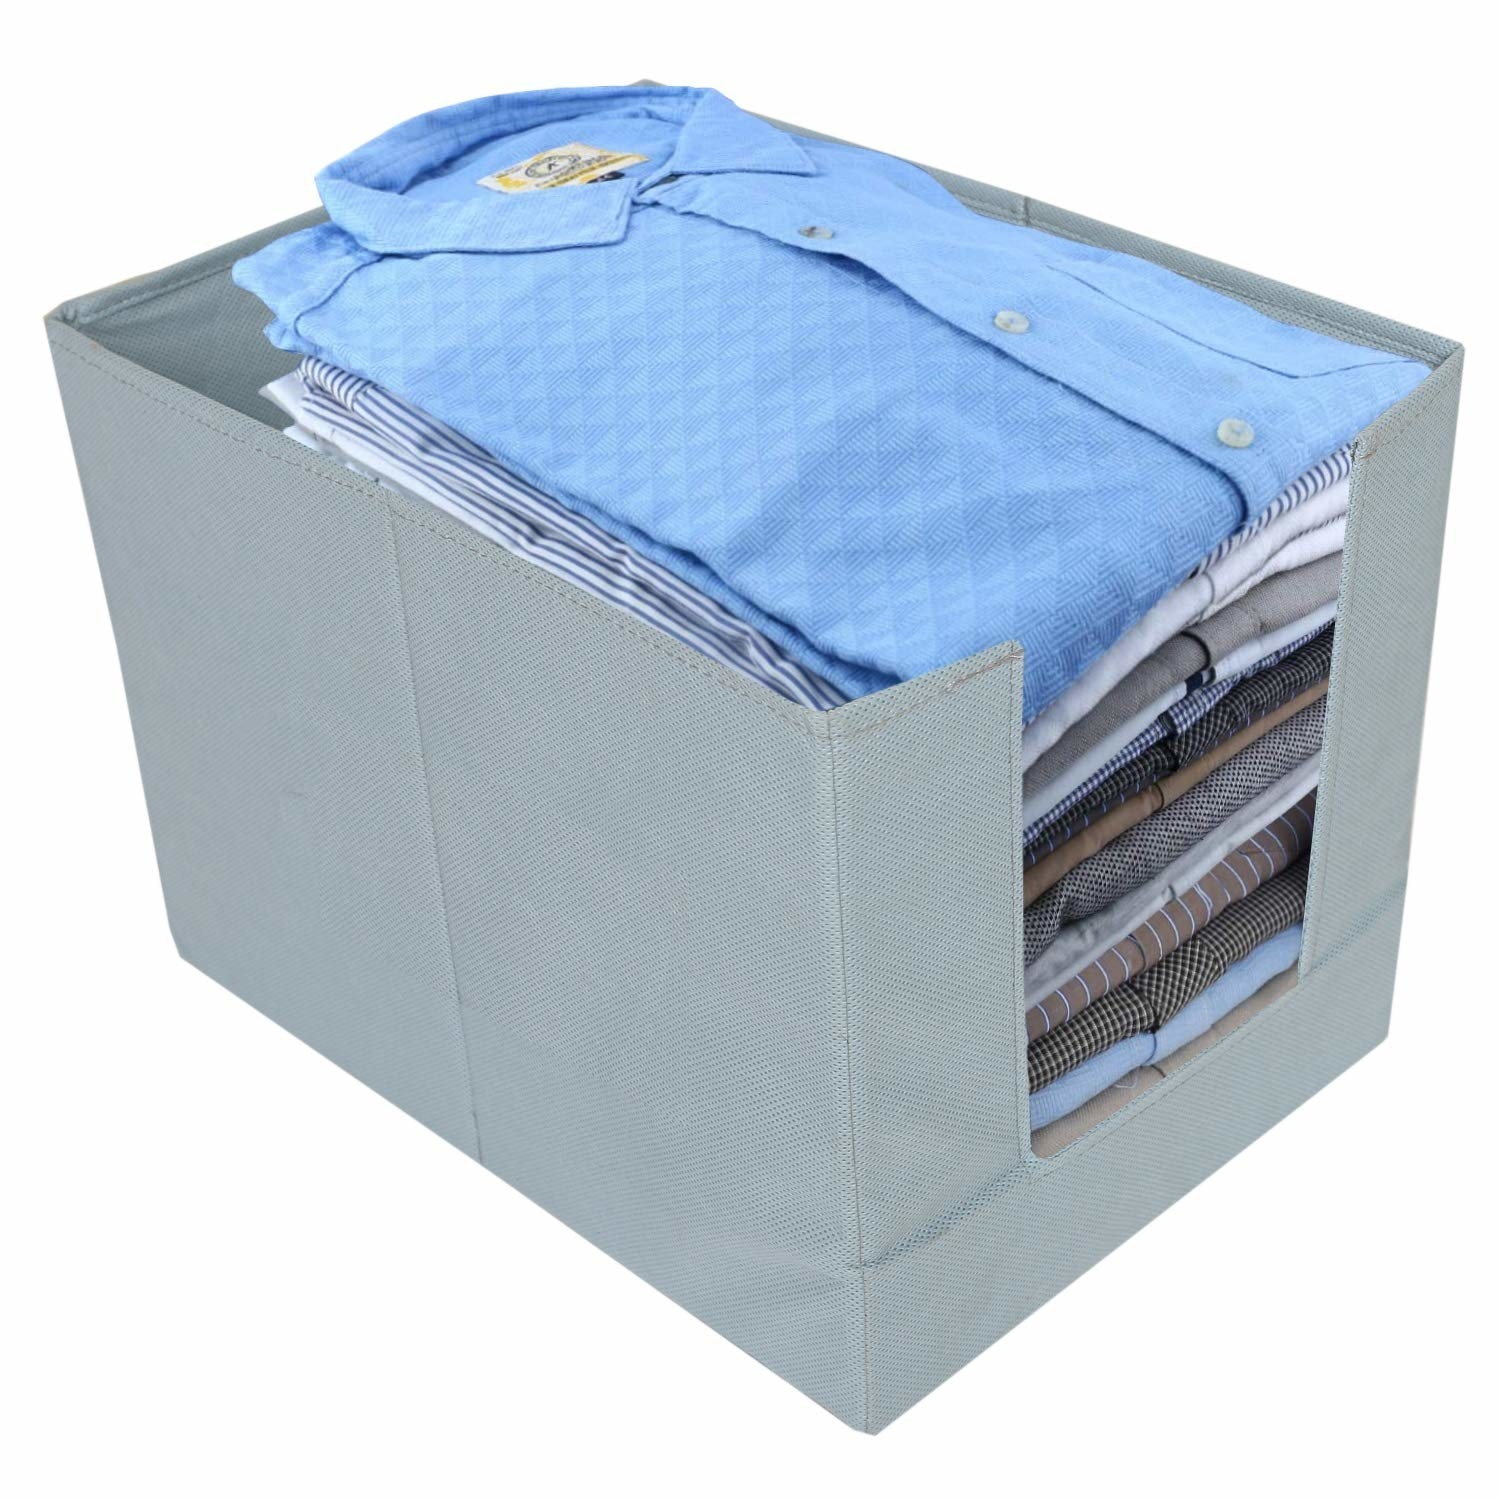 Shirts stacked in the organiser.